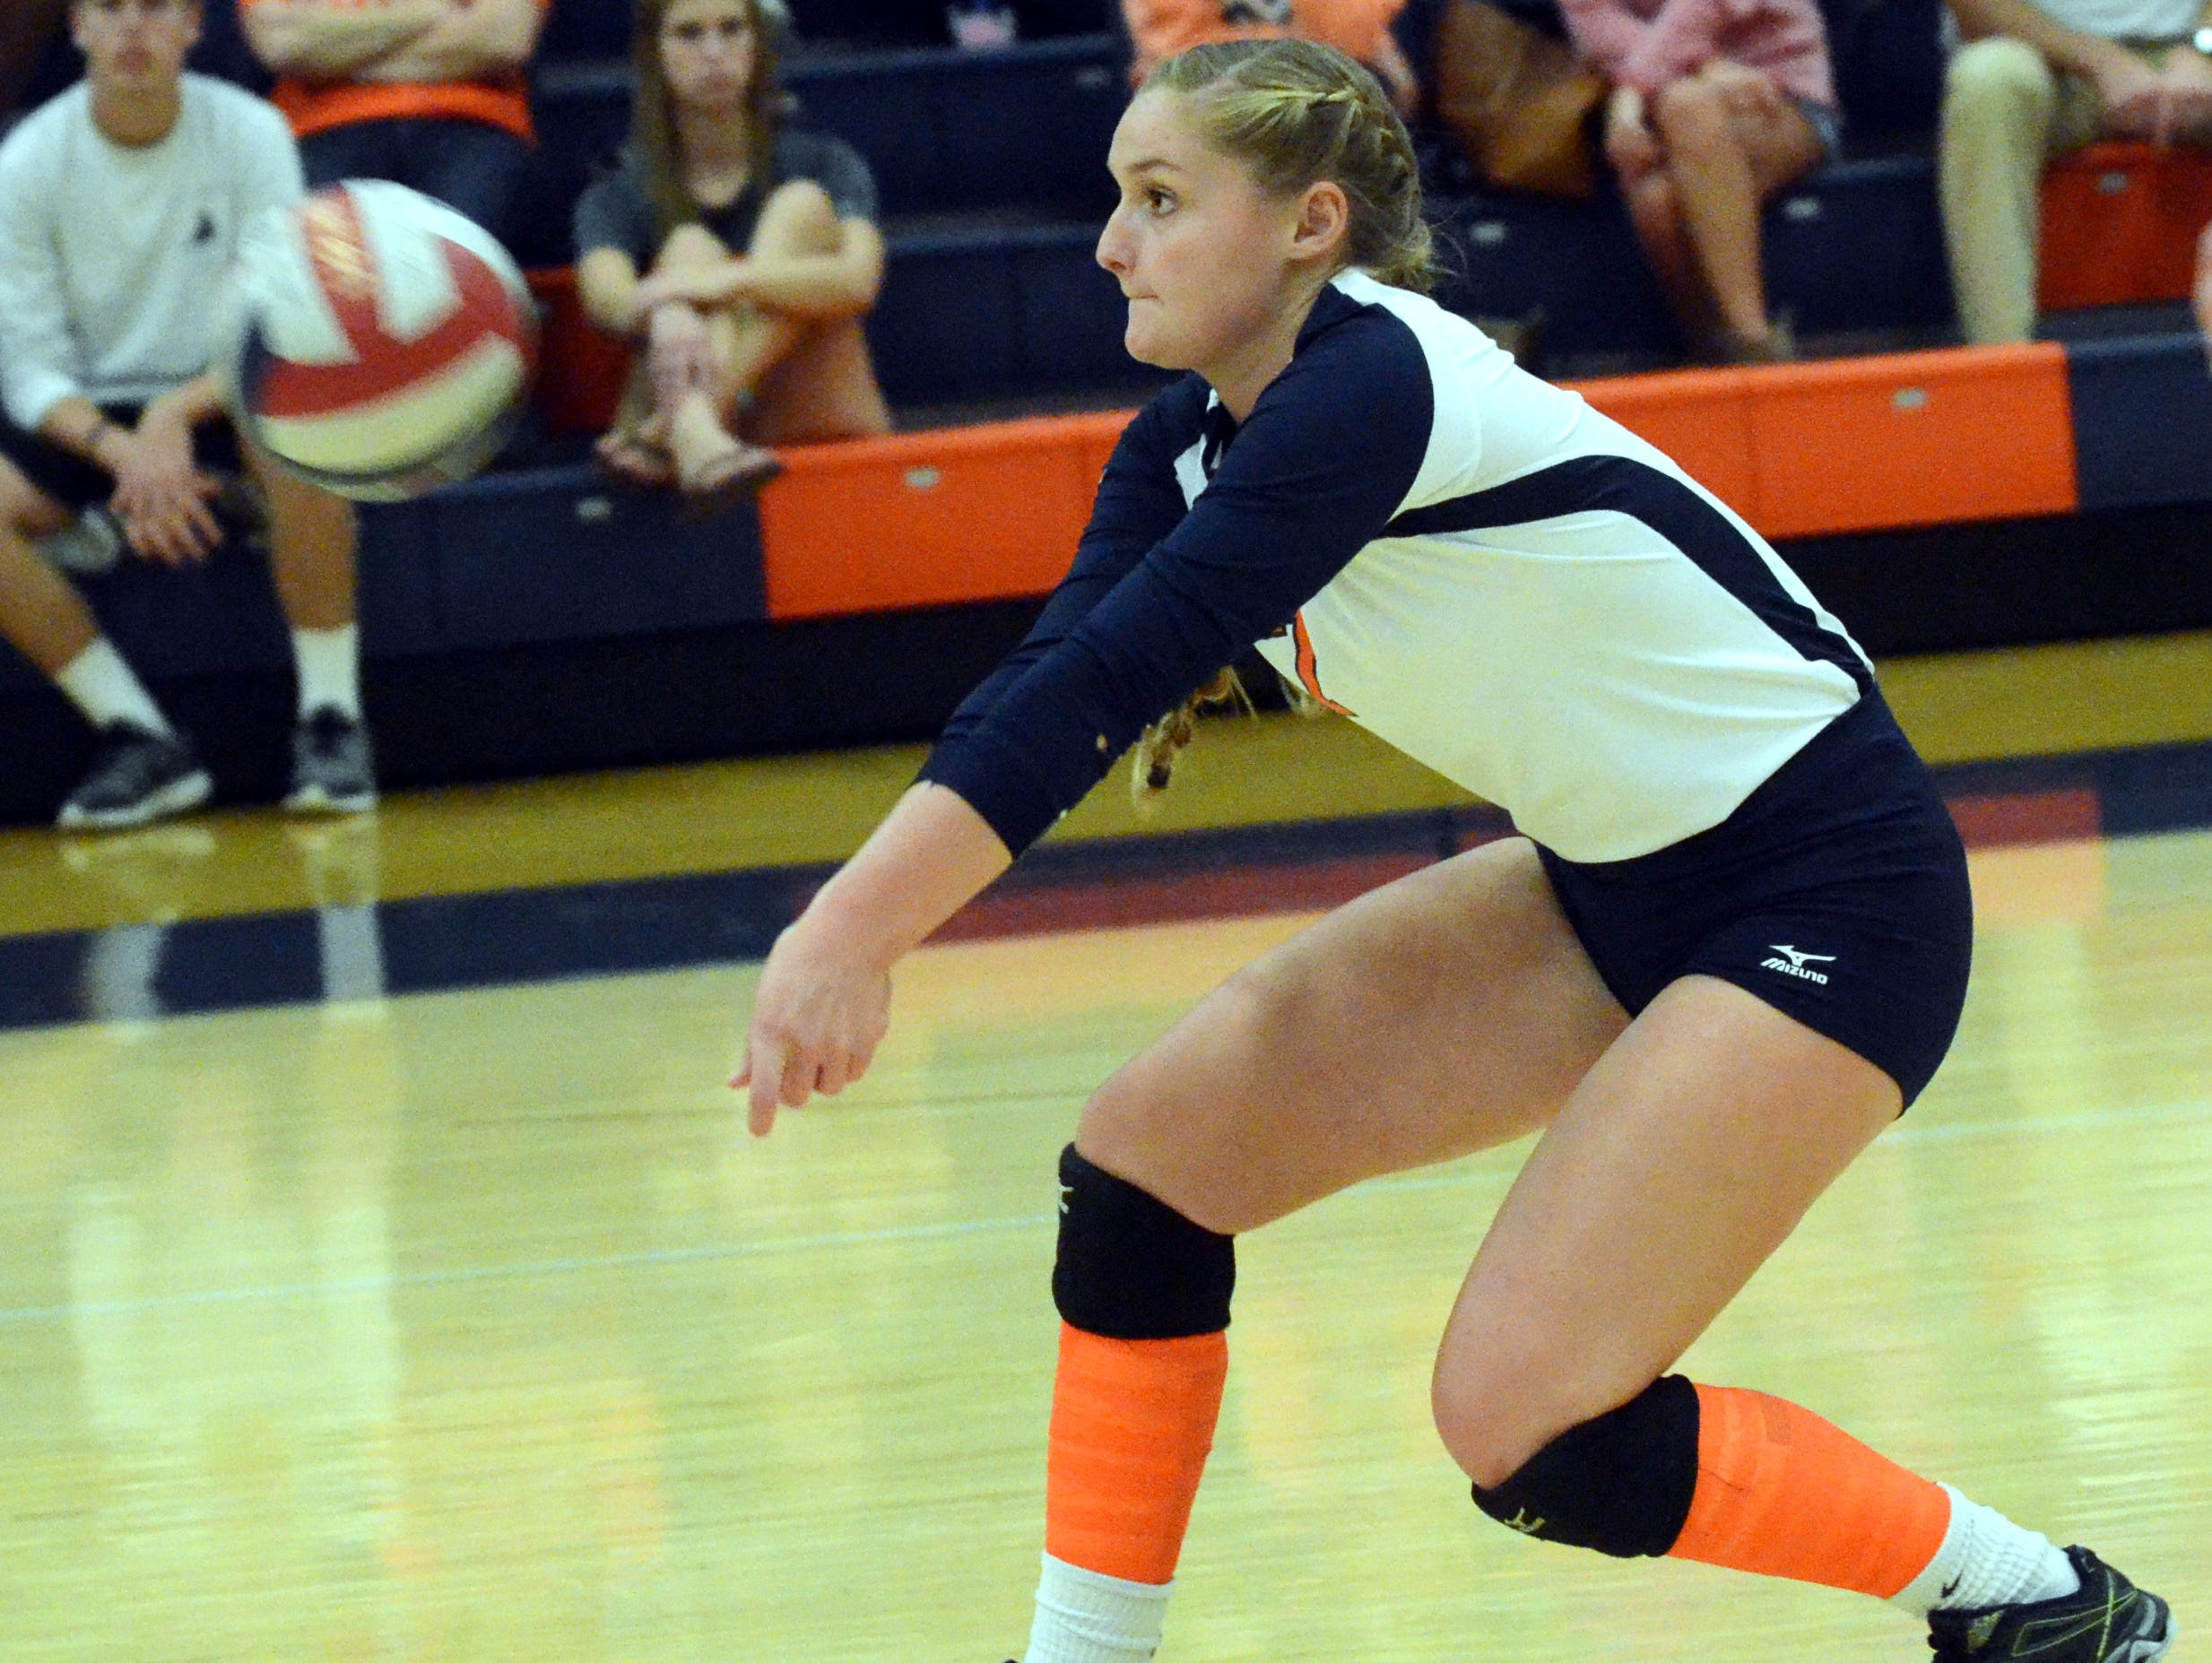 Beech High sophomore Chloee McDaniel passes a serve during the first game.